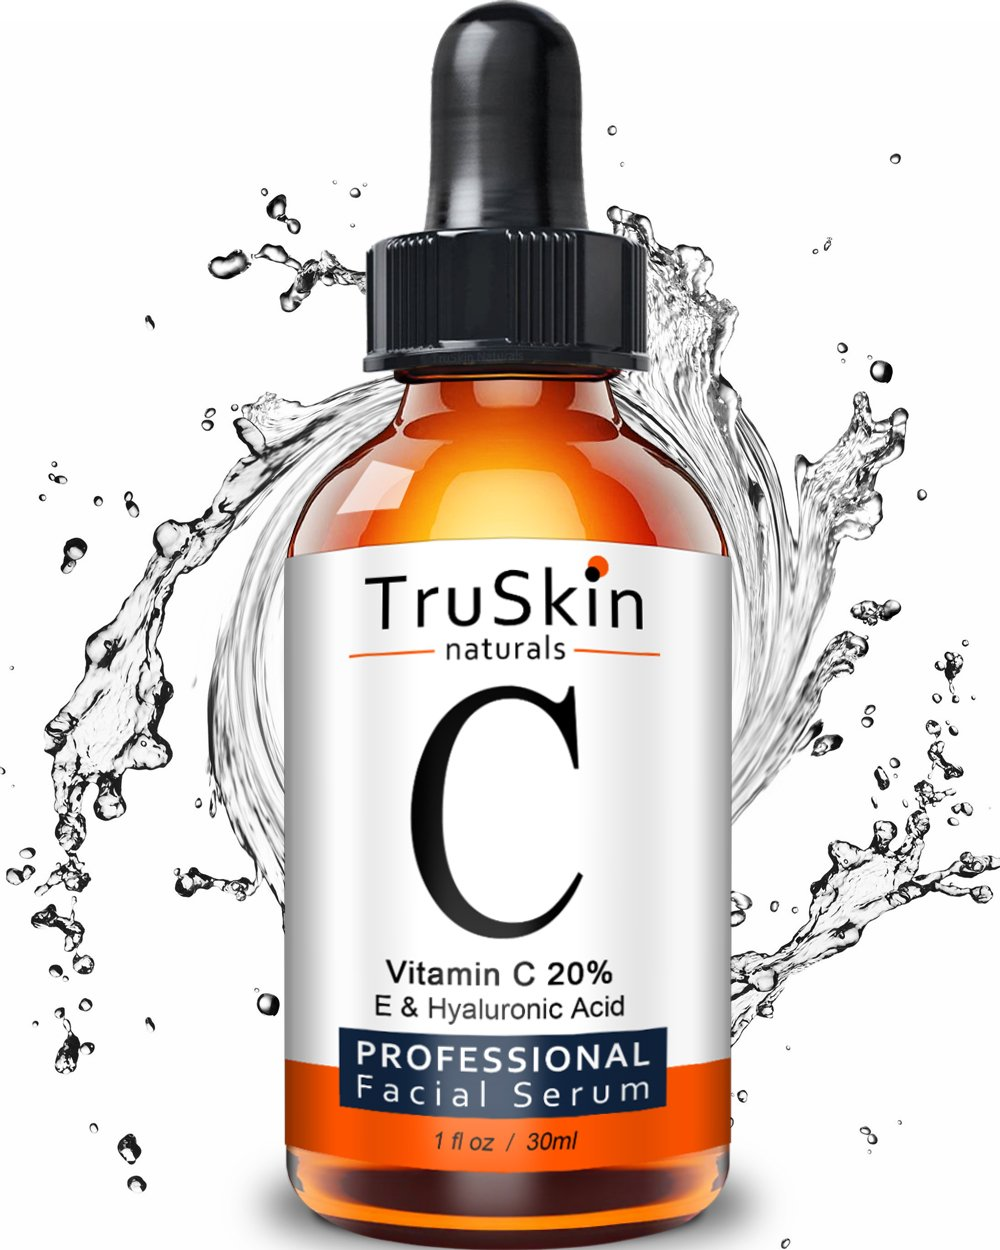 TruSkin Naturals Vitamin C Serum for Face, Topical Facial Serum with Hyaluronic Acid & Vitamin E, 1 fl oz.